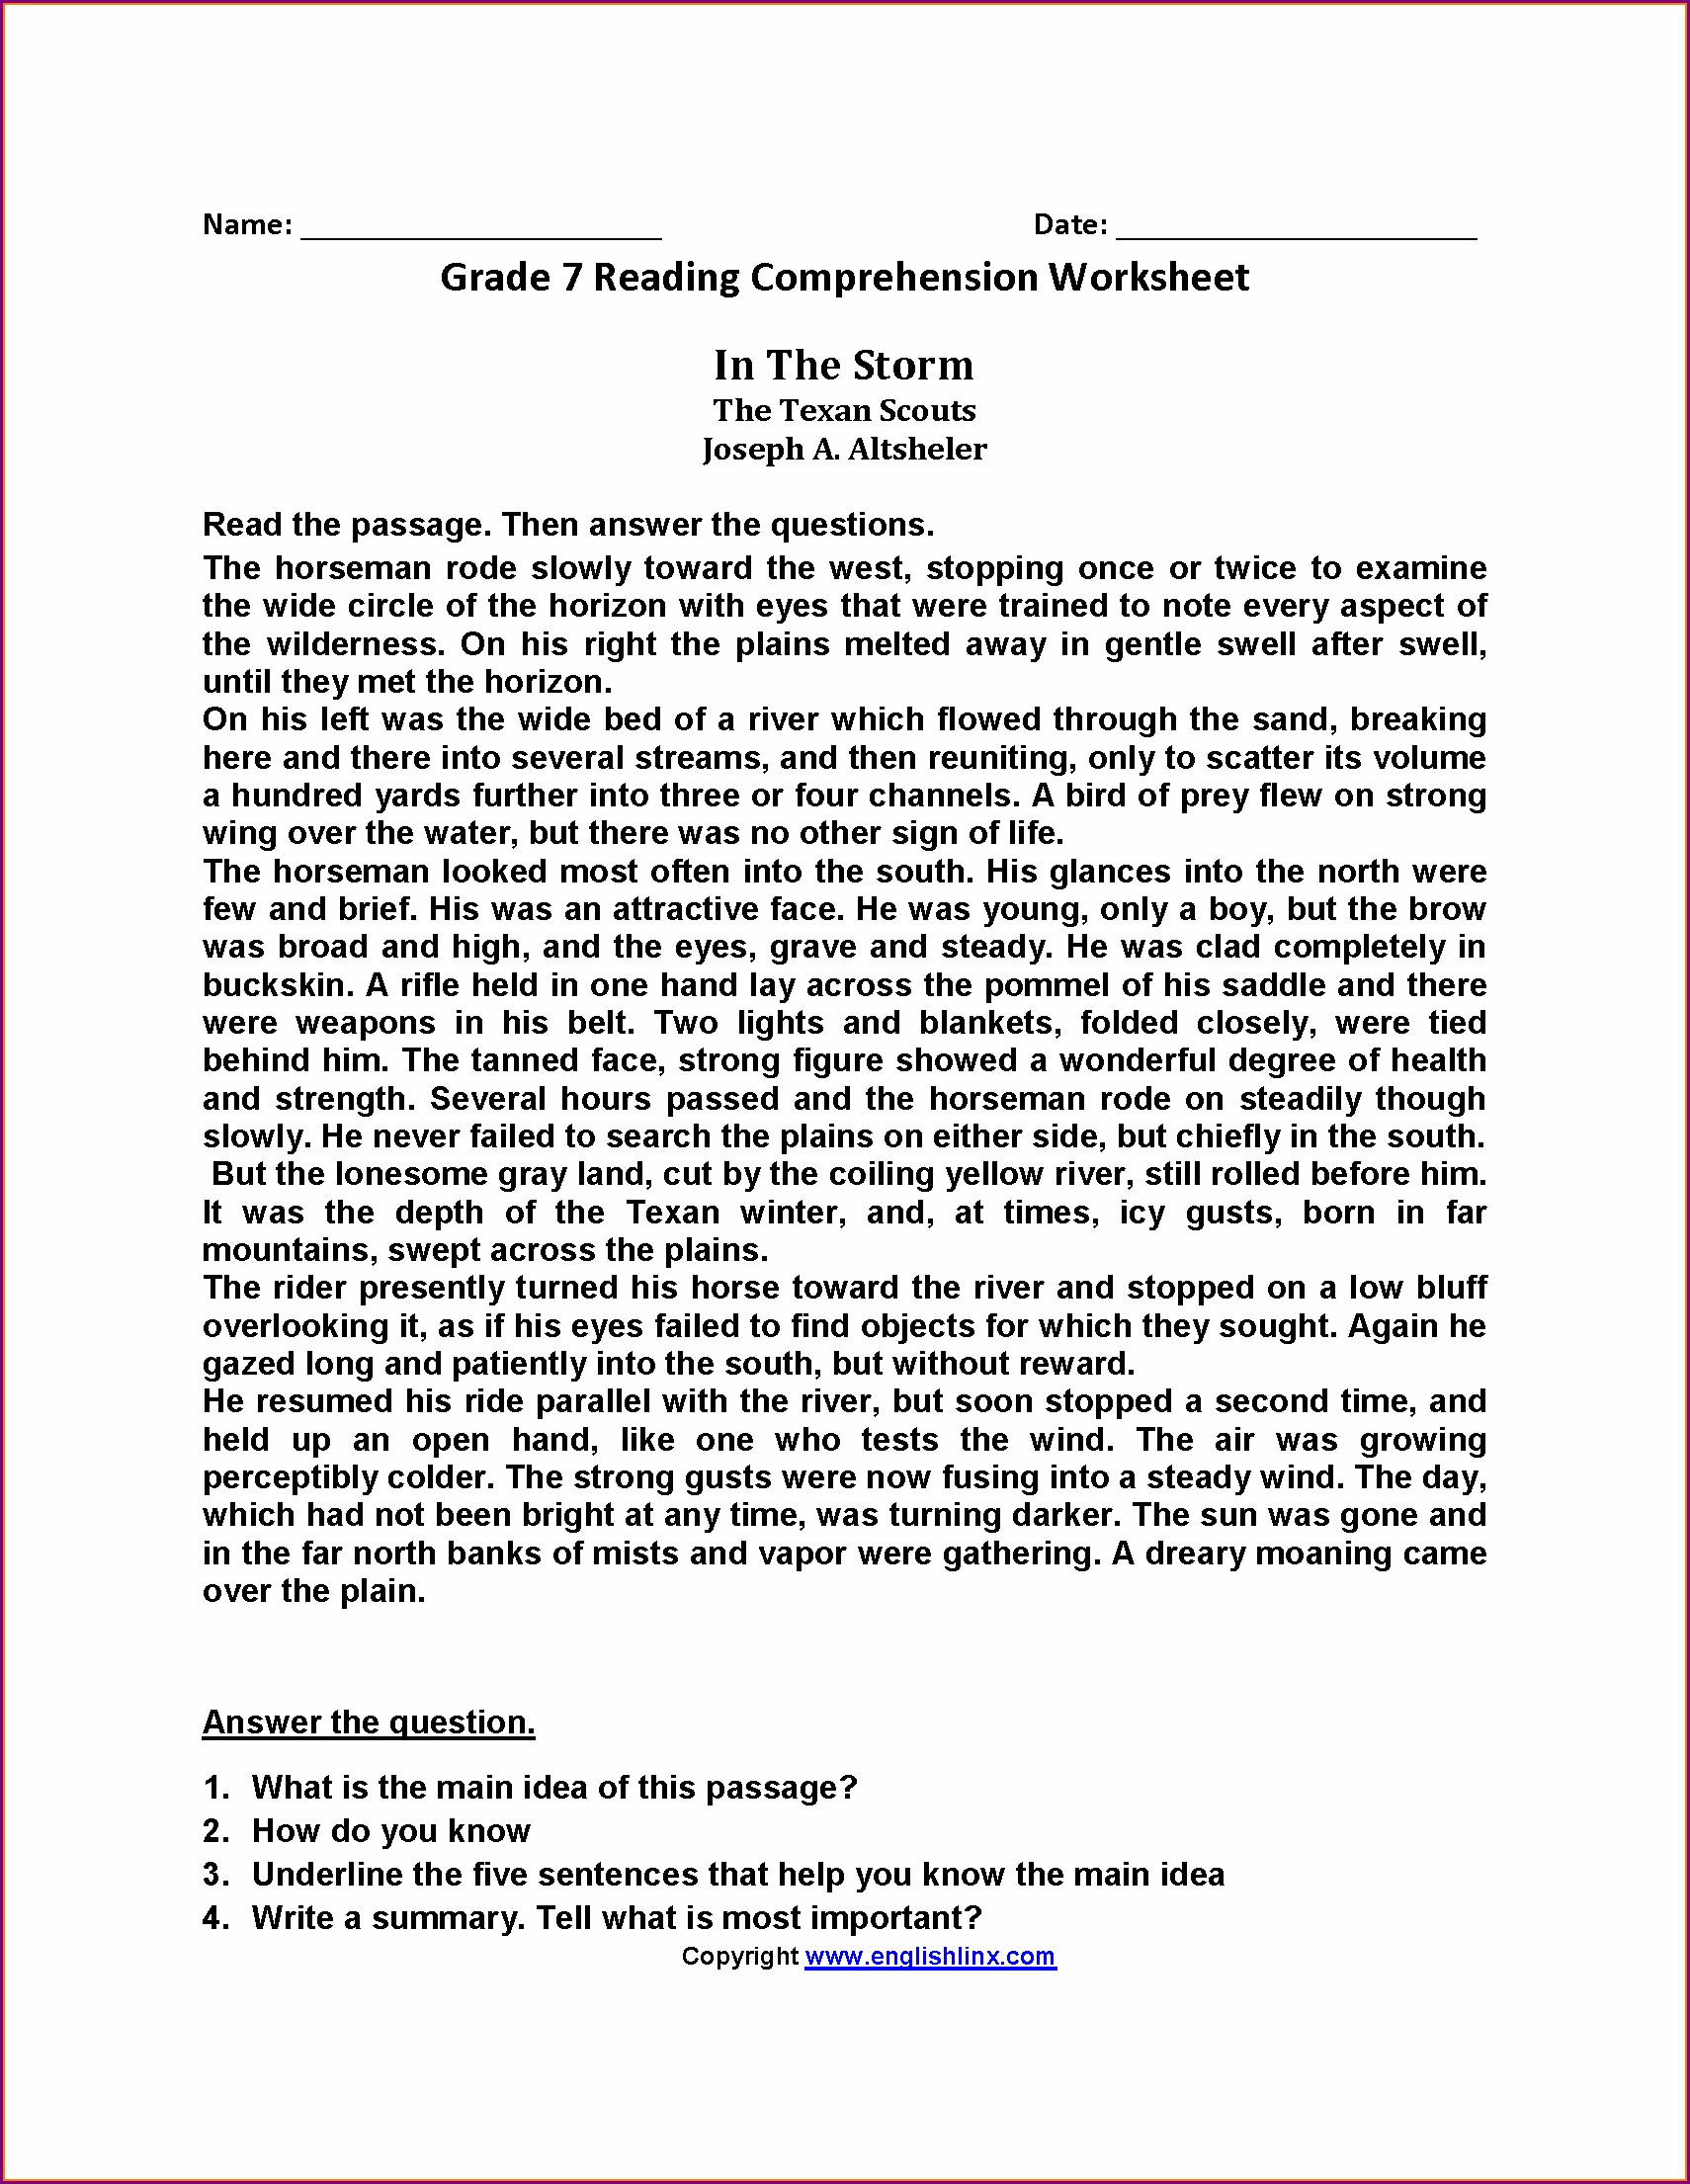 Comprehension Worksheets For Grade 7 With Answers